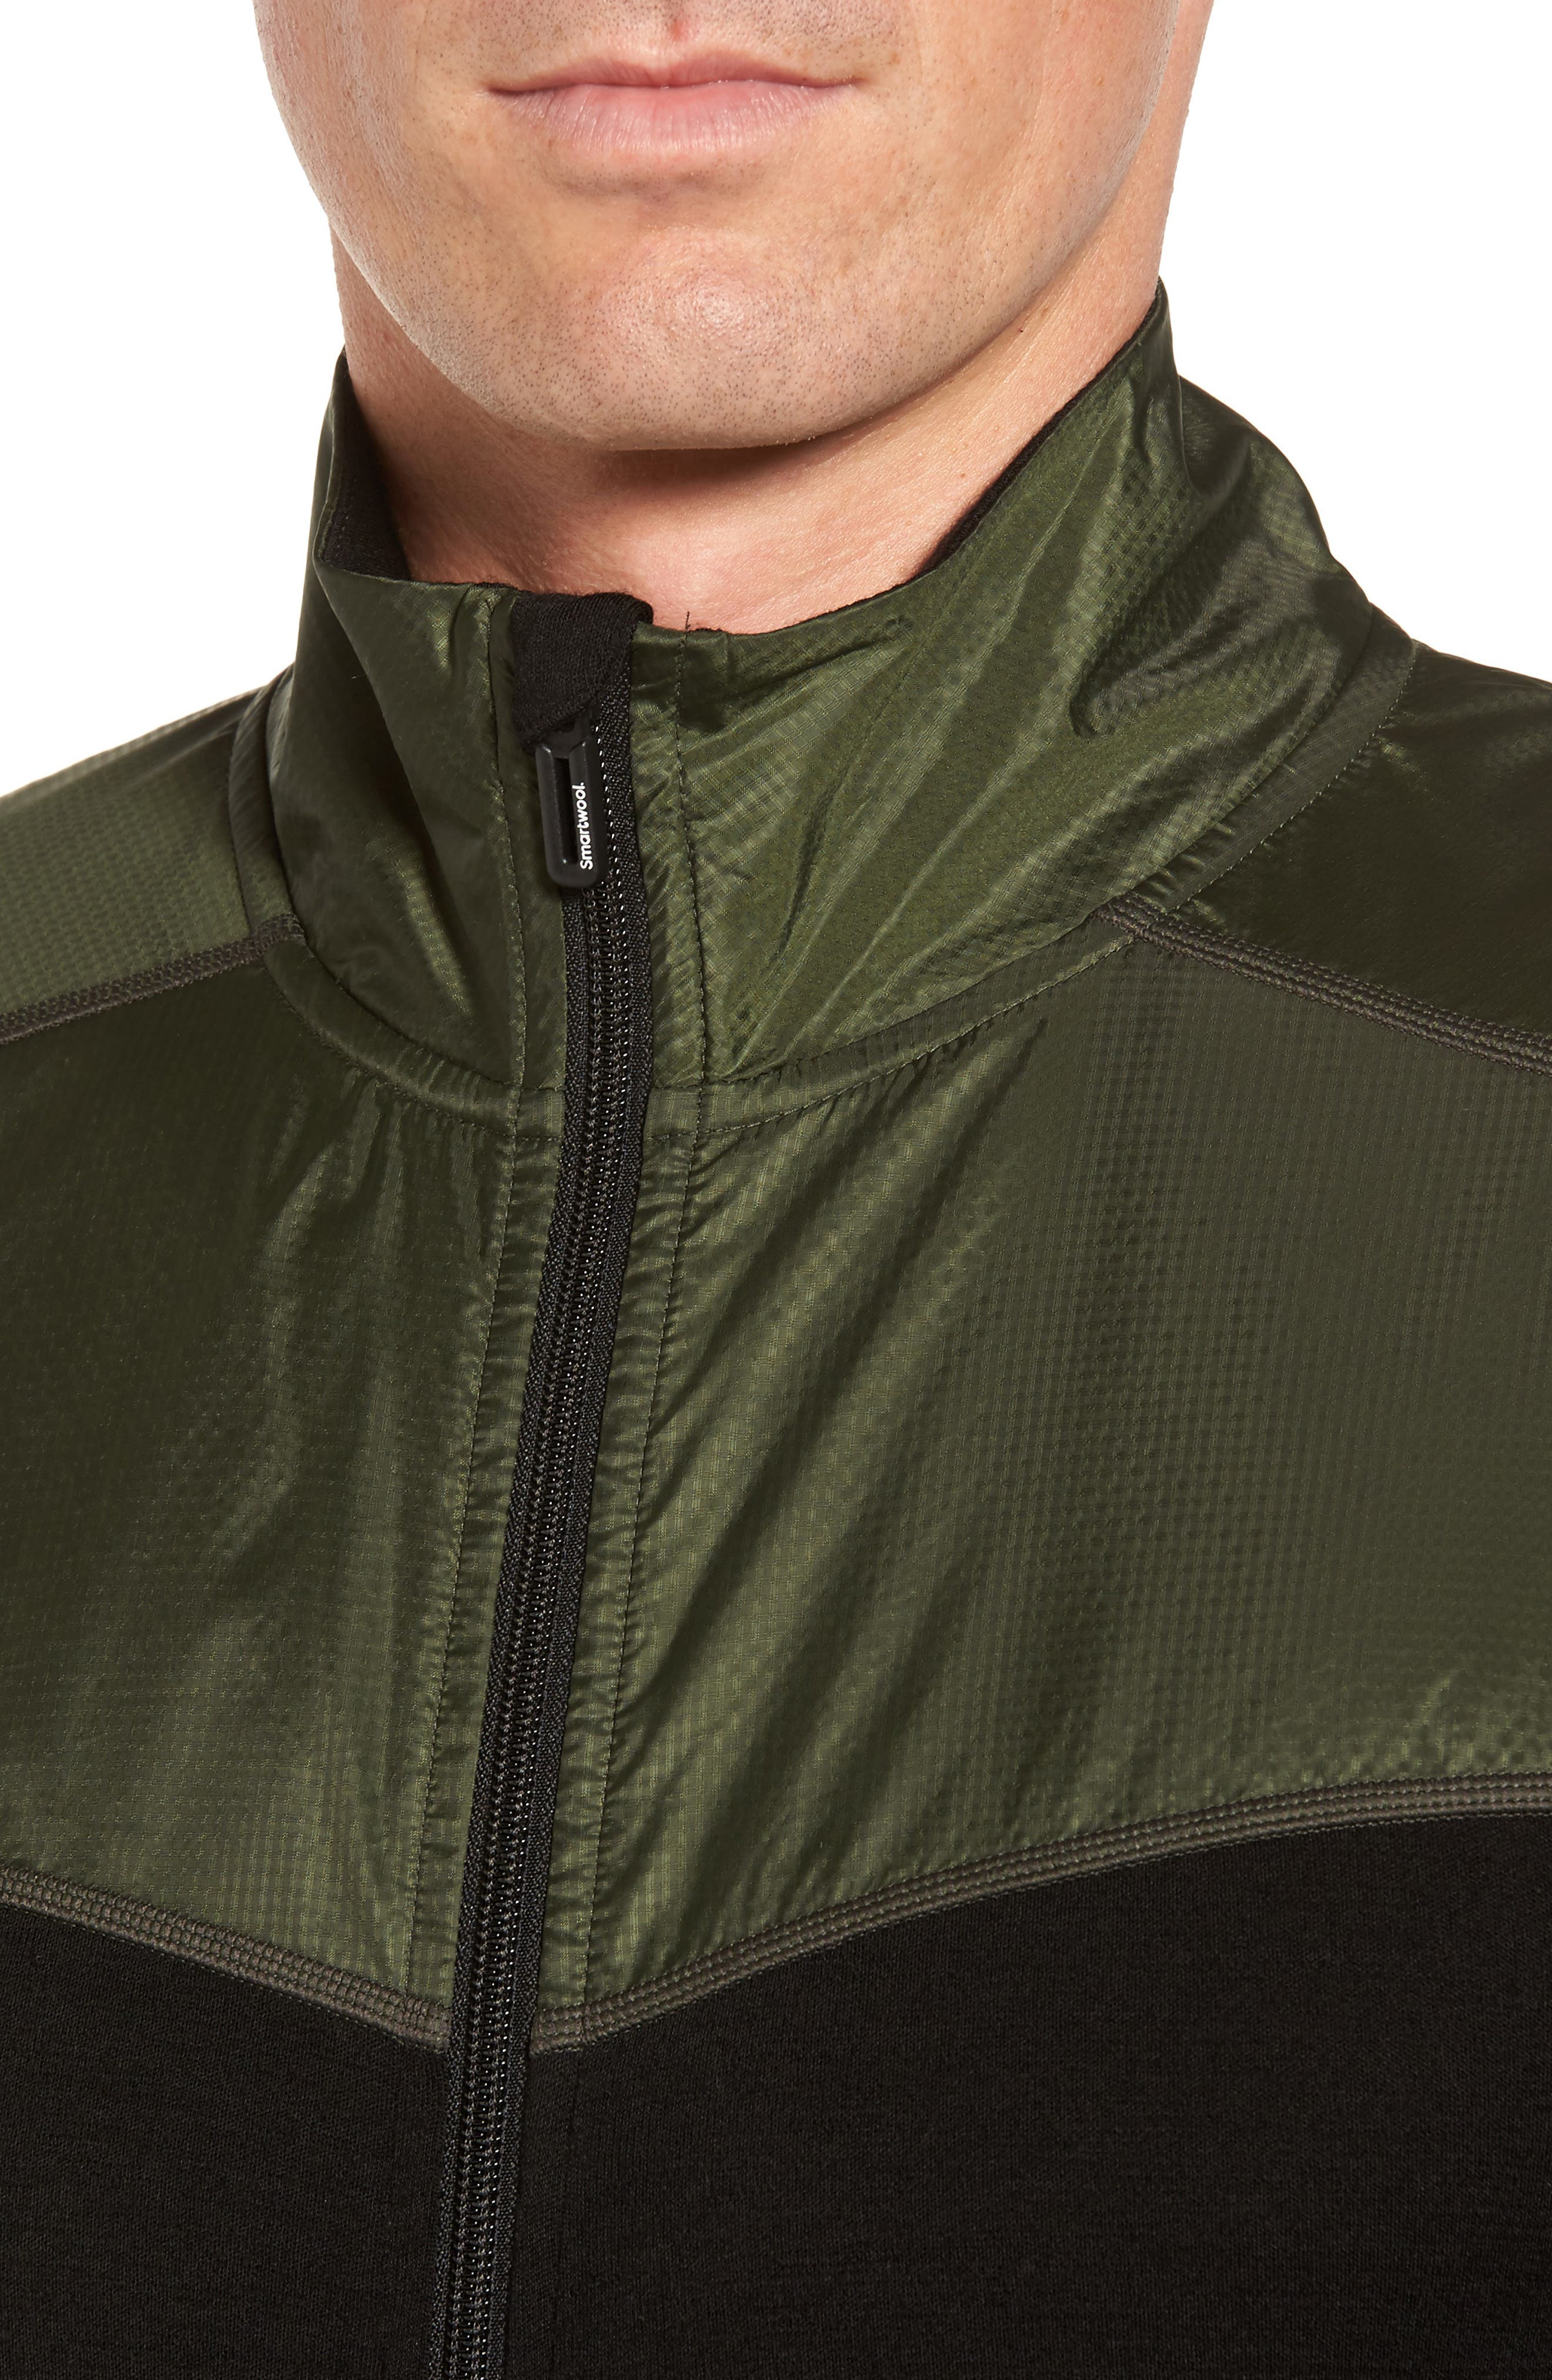 250 Sport Merino Wool Zip Jacket,                             Alternate thumbnail 4, color,                             Olive